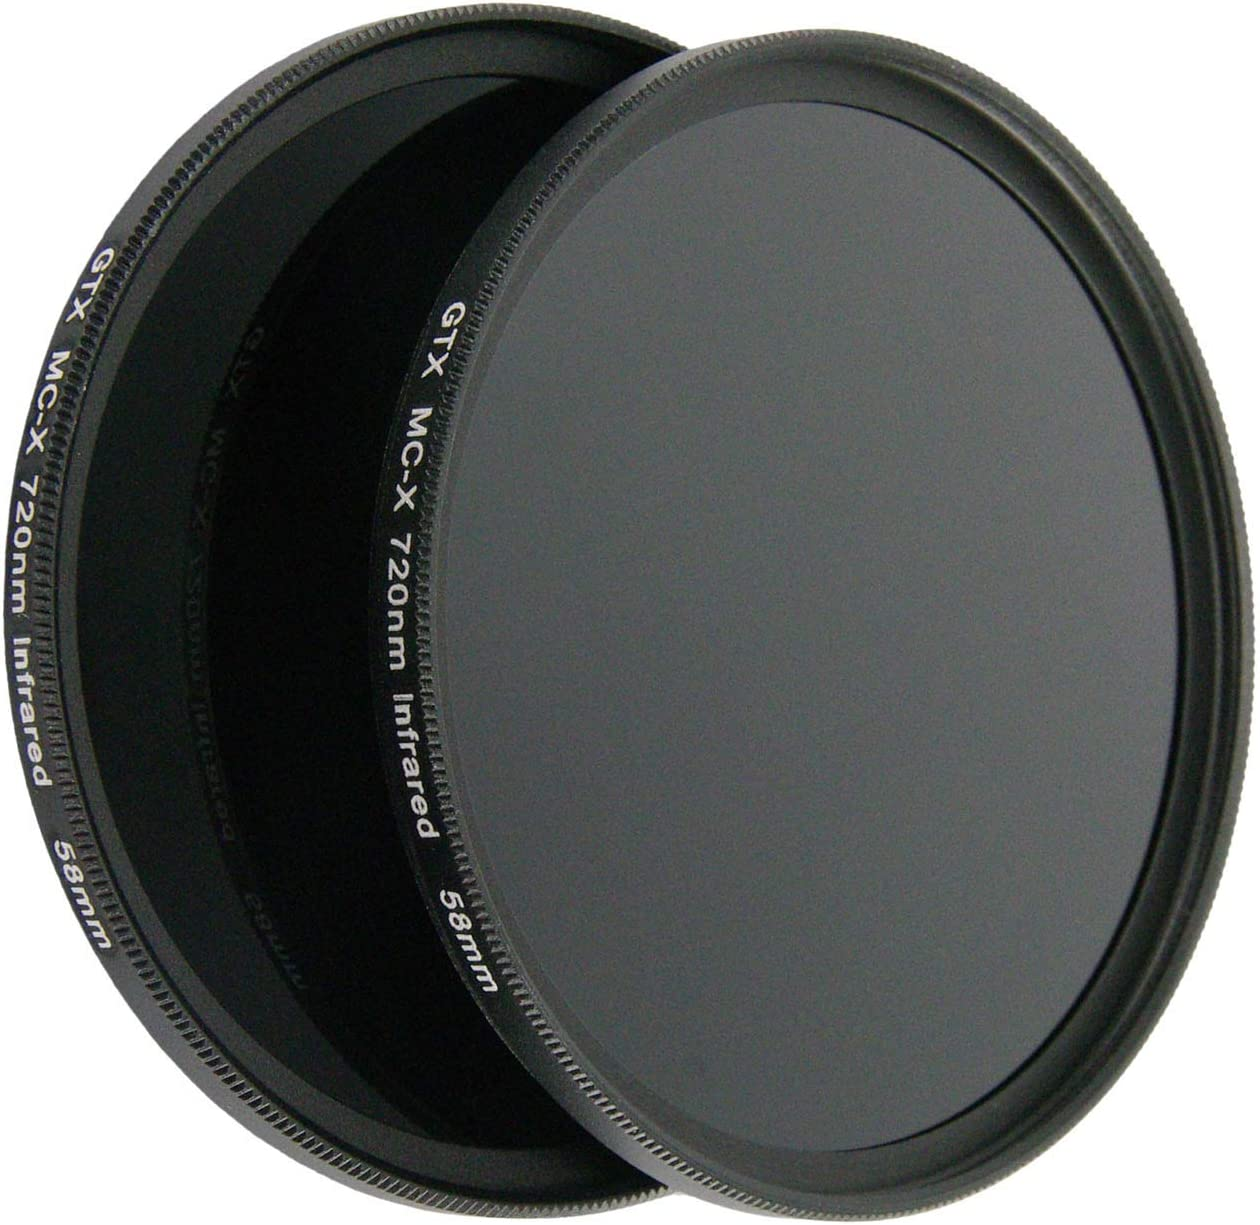 CPL and ND4 Lens Filter Set Lens Cleaner Kit Sunset Foto67 mm Lens Filter and Accessory Kit IR Infrared 720nm Lens Cap Includes: Schott Glass Multicoated L39 UV